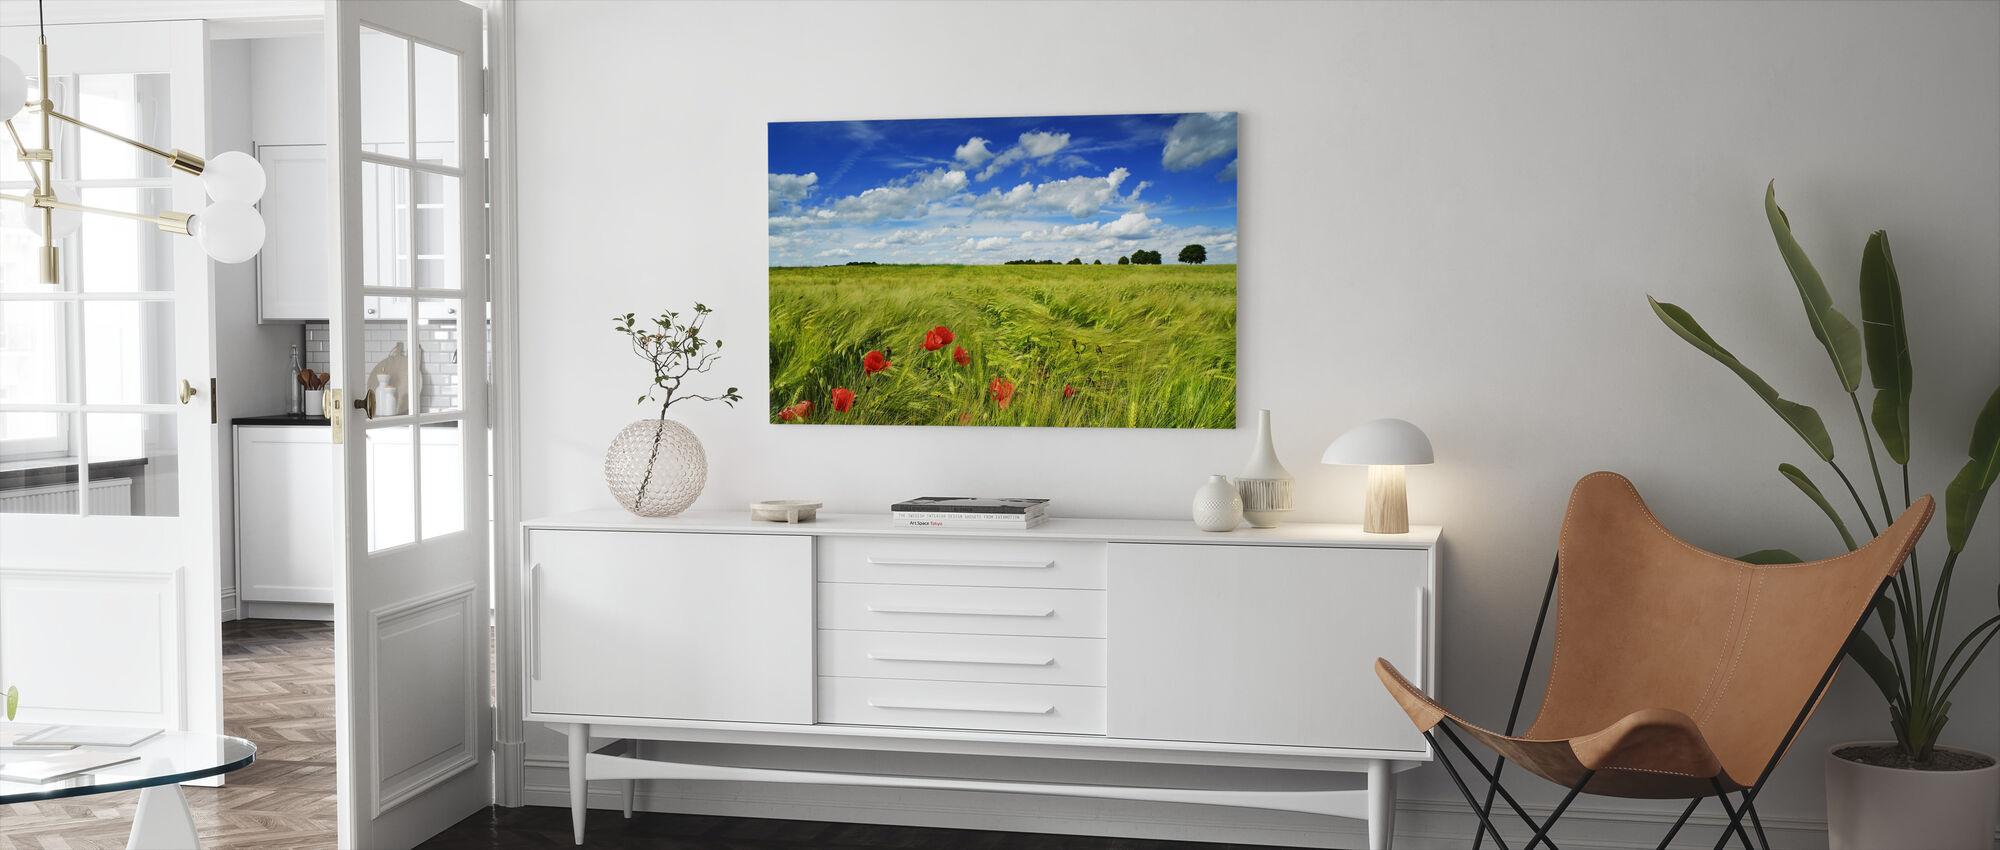 Barley Field with Corn Poppies - Canvas print - Living Room